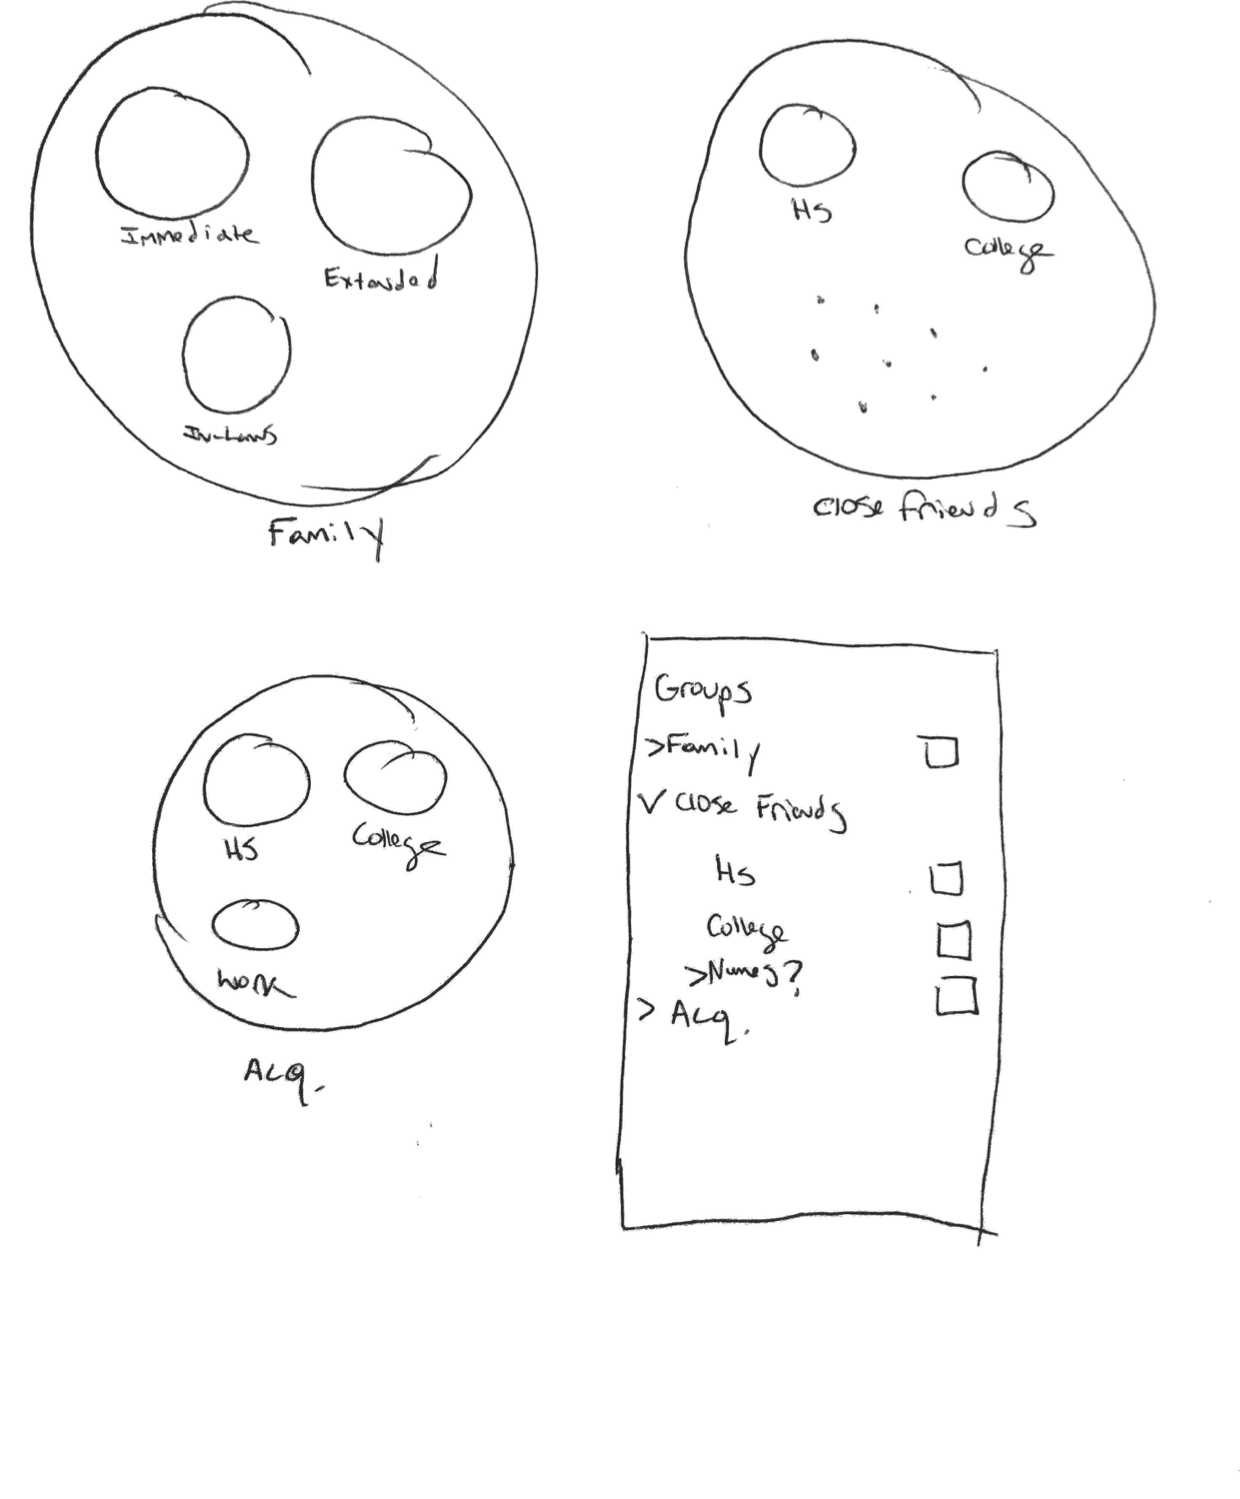 Group Page 3.png